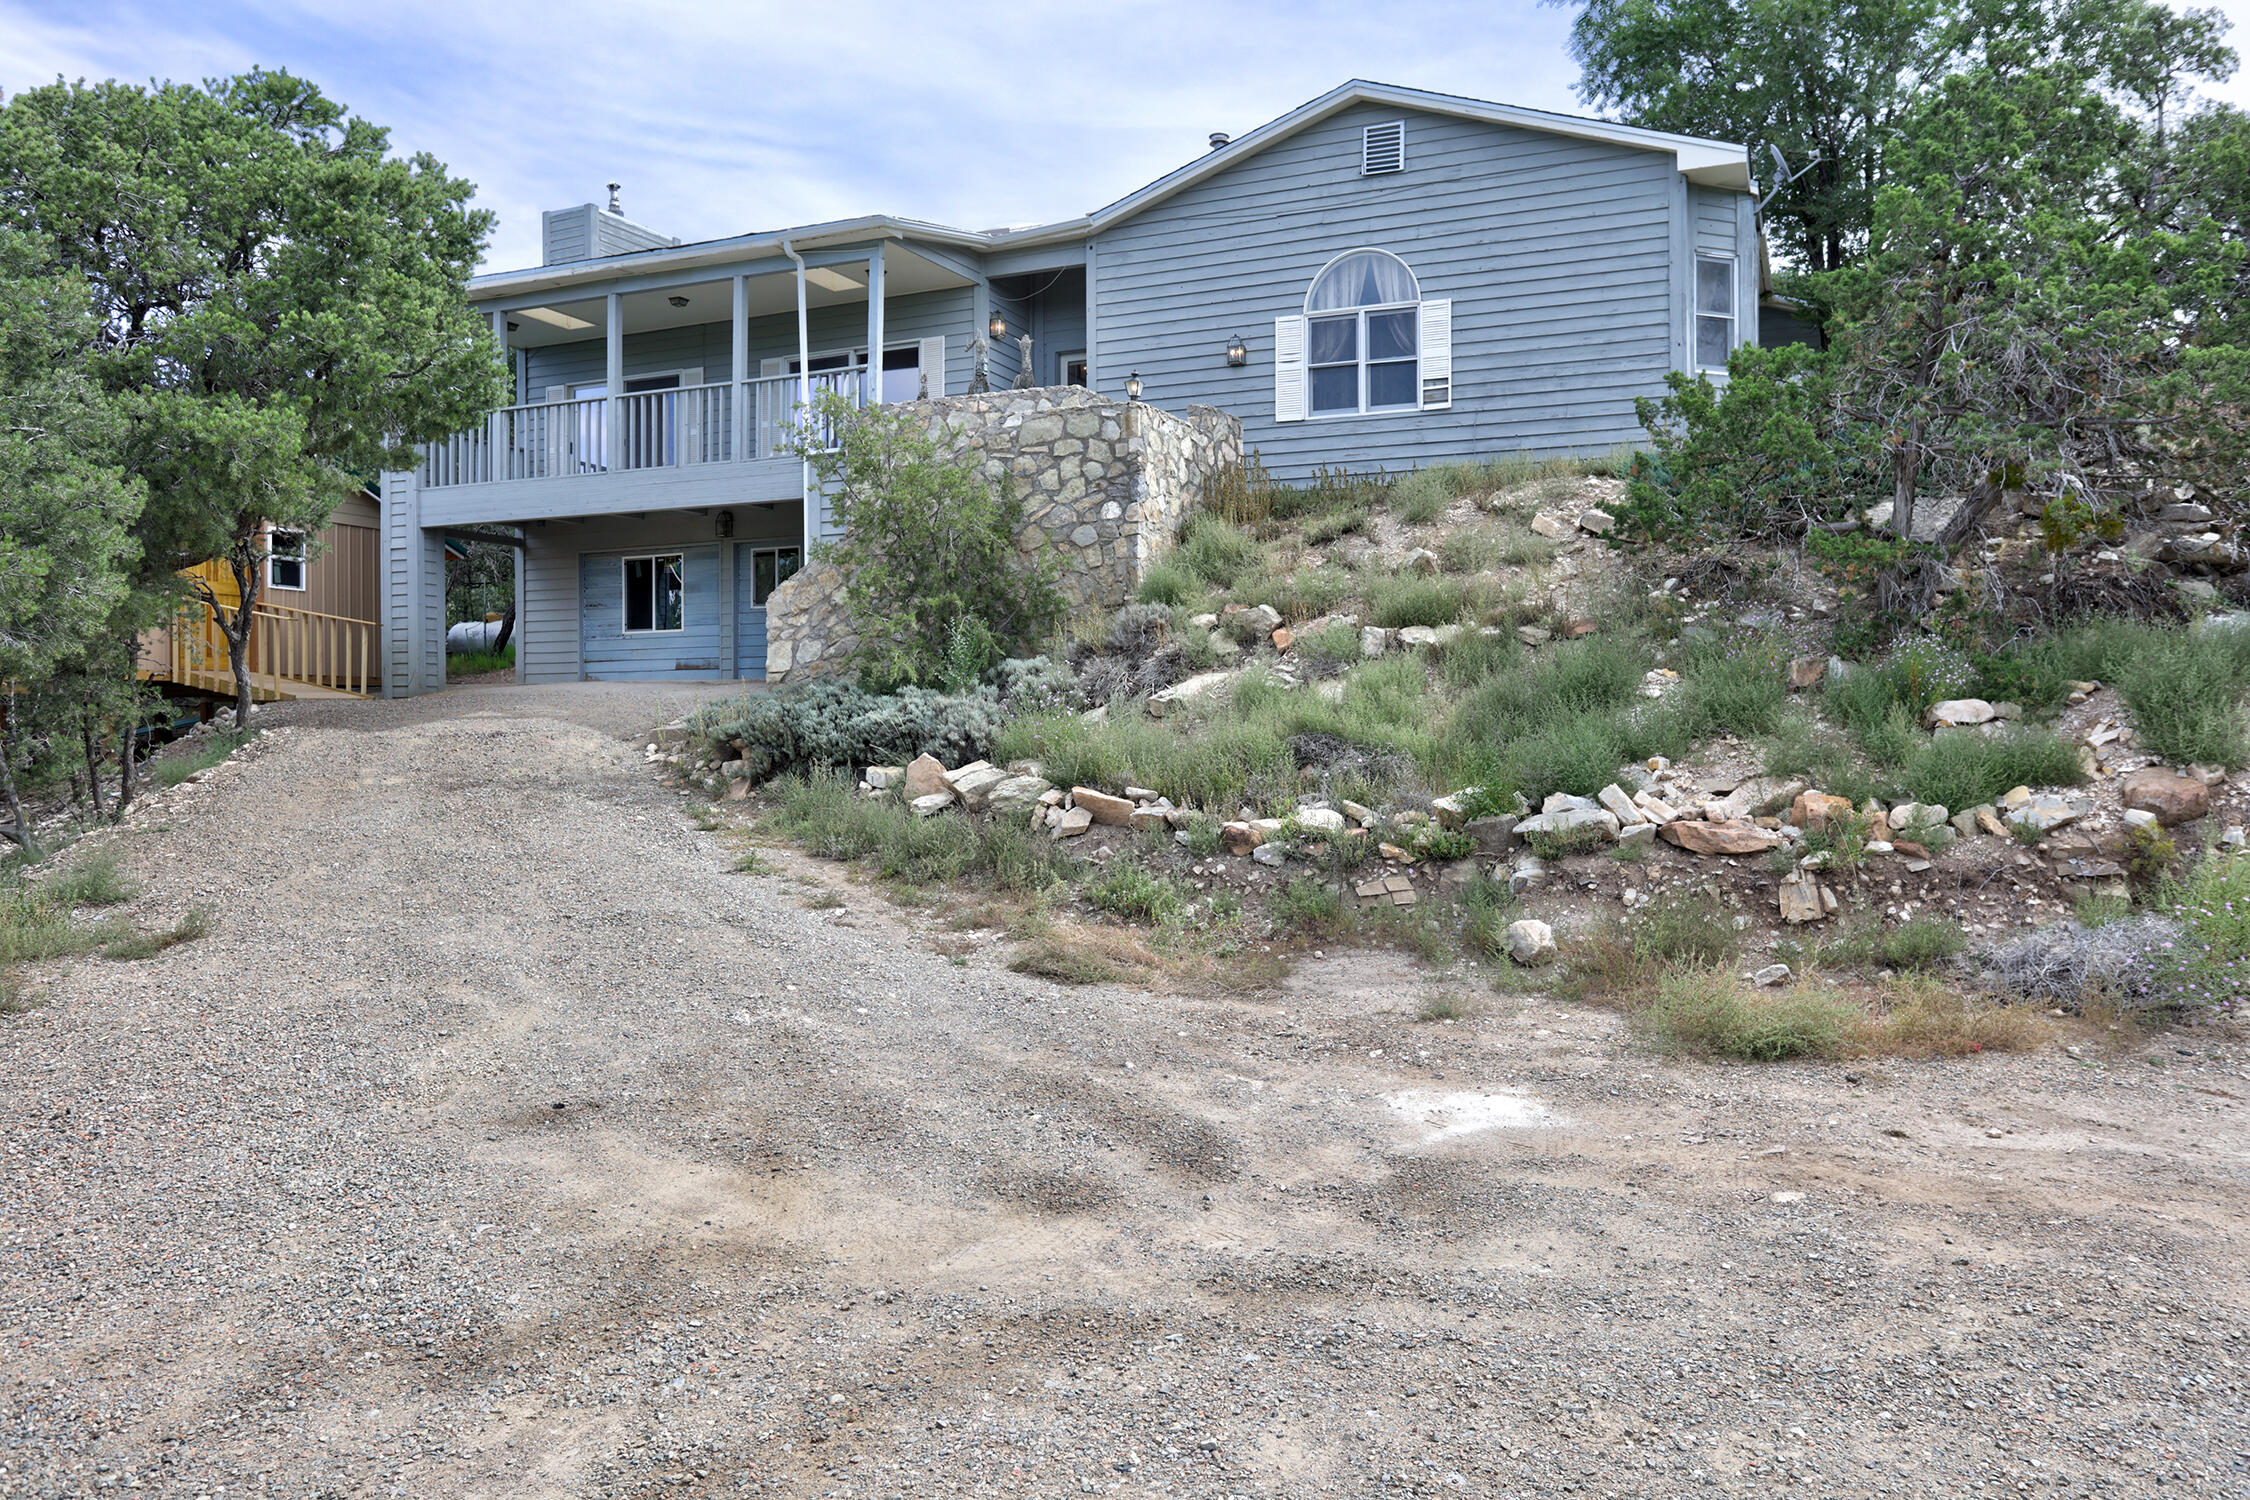 PRICE REDUCED!! - This 3 bedroom, 2 bathroom home is situated perfectly on 1.38 acres to take full advantage of the mountain views. The beauty of the mountain is impossible to miss with double sliding glass doors in the living room, opening up onto a large deck. There is an in-floor hot tub with floor to ceiling windows so you can bask in the beauty of the mountain. Newer pellet stoves are an excellent heat source in winter in addition to the base board heating and central forced air. You'll find plenty of room for all your extras in the new (2021) auxiliary building. Former garage has been partially converted so it is a 750+ sq/ft bonus with a pellet stove already installed for heat. Well and septic were installed in 2018.